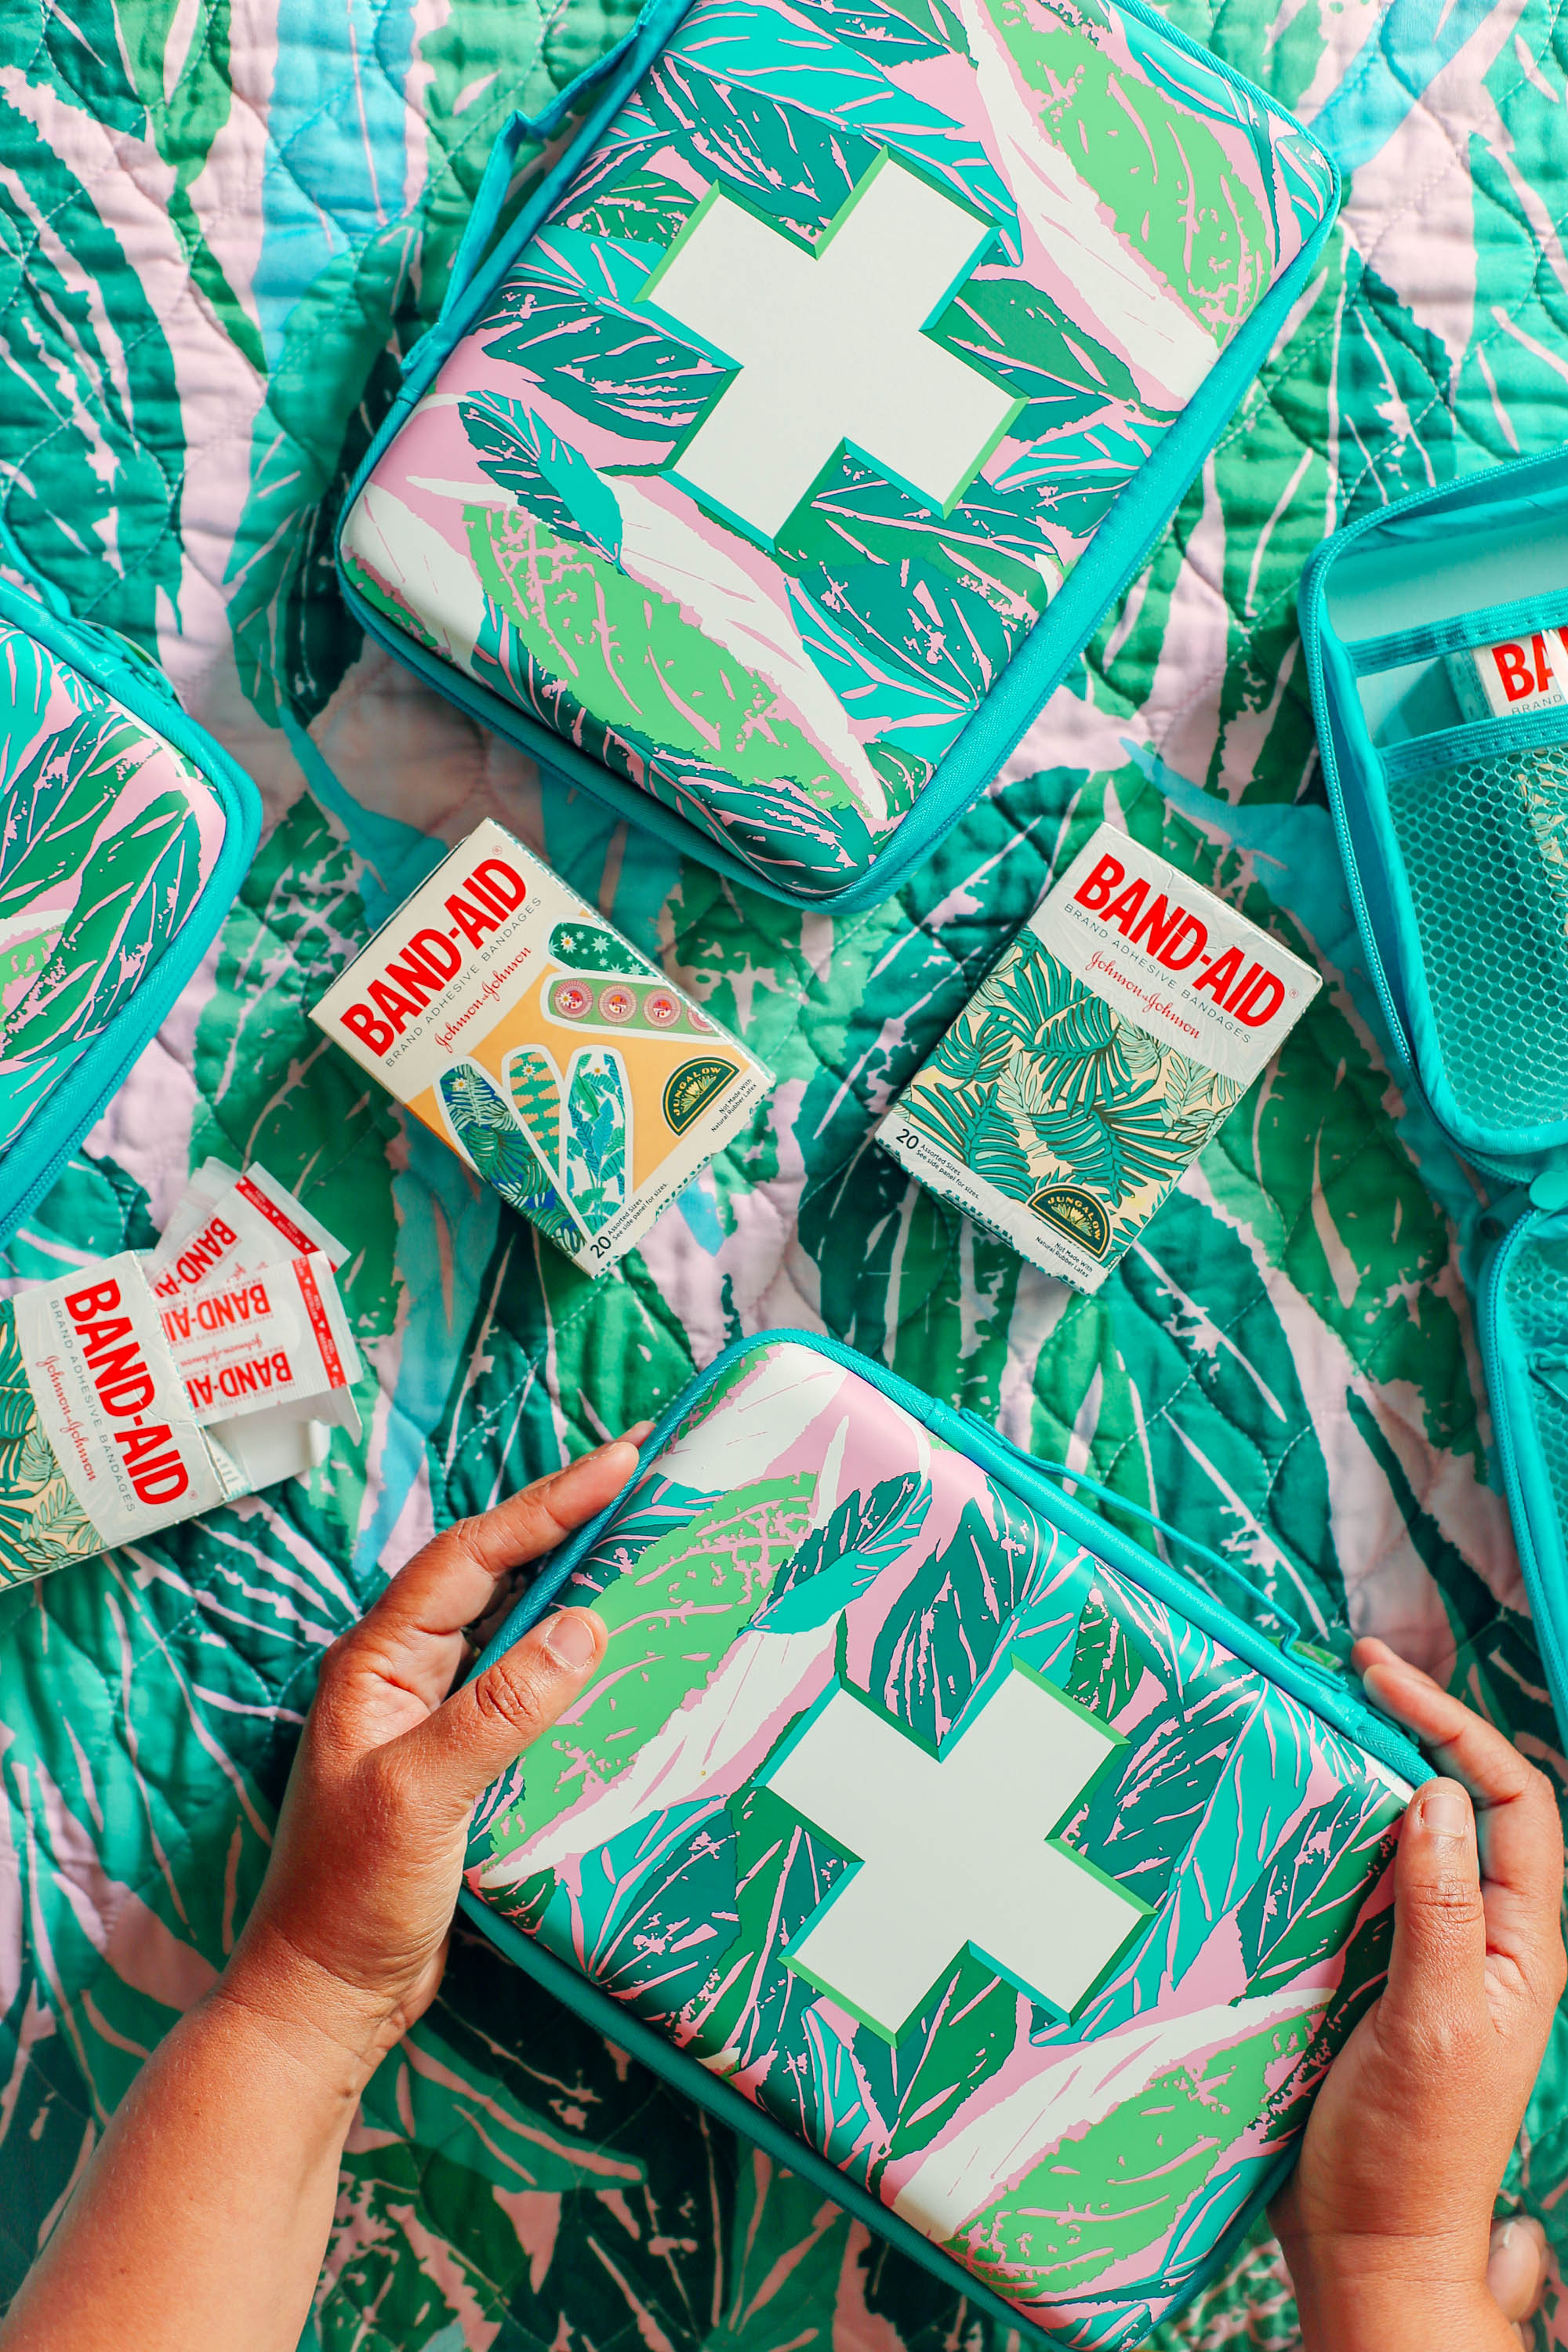 JUNGALOW   ® First Aid Kit and Band-Aid Brand Adhesive Bandages    at Target